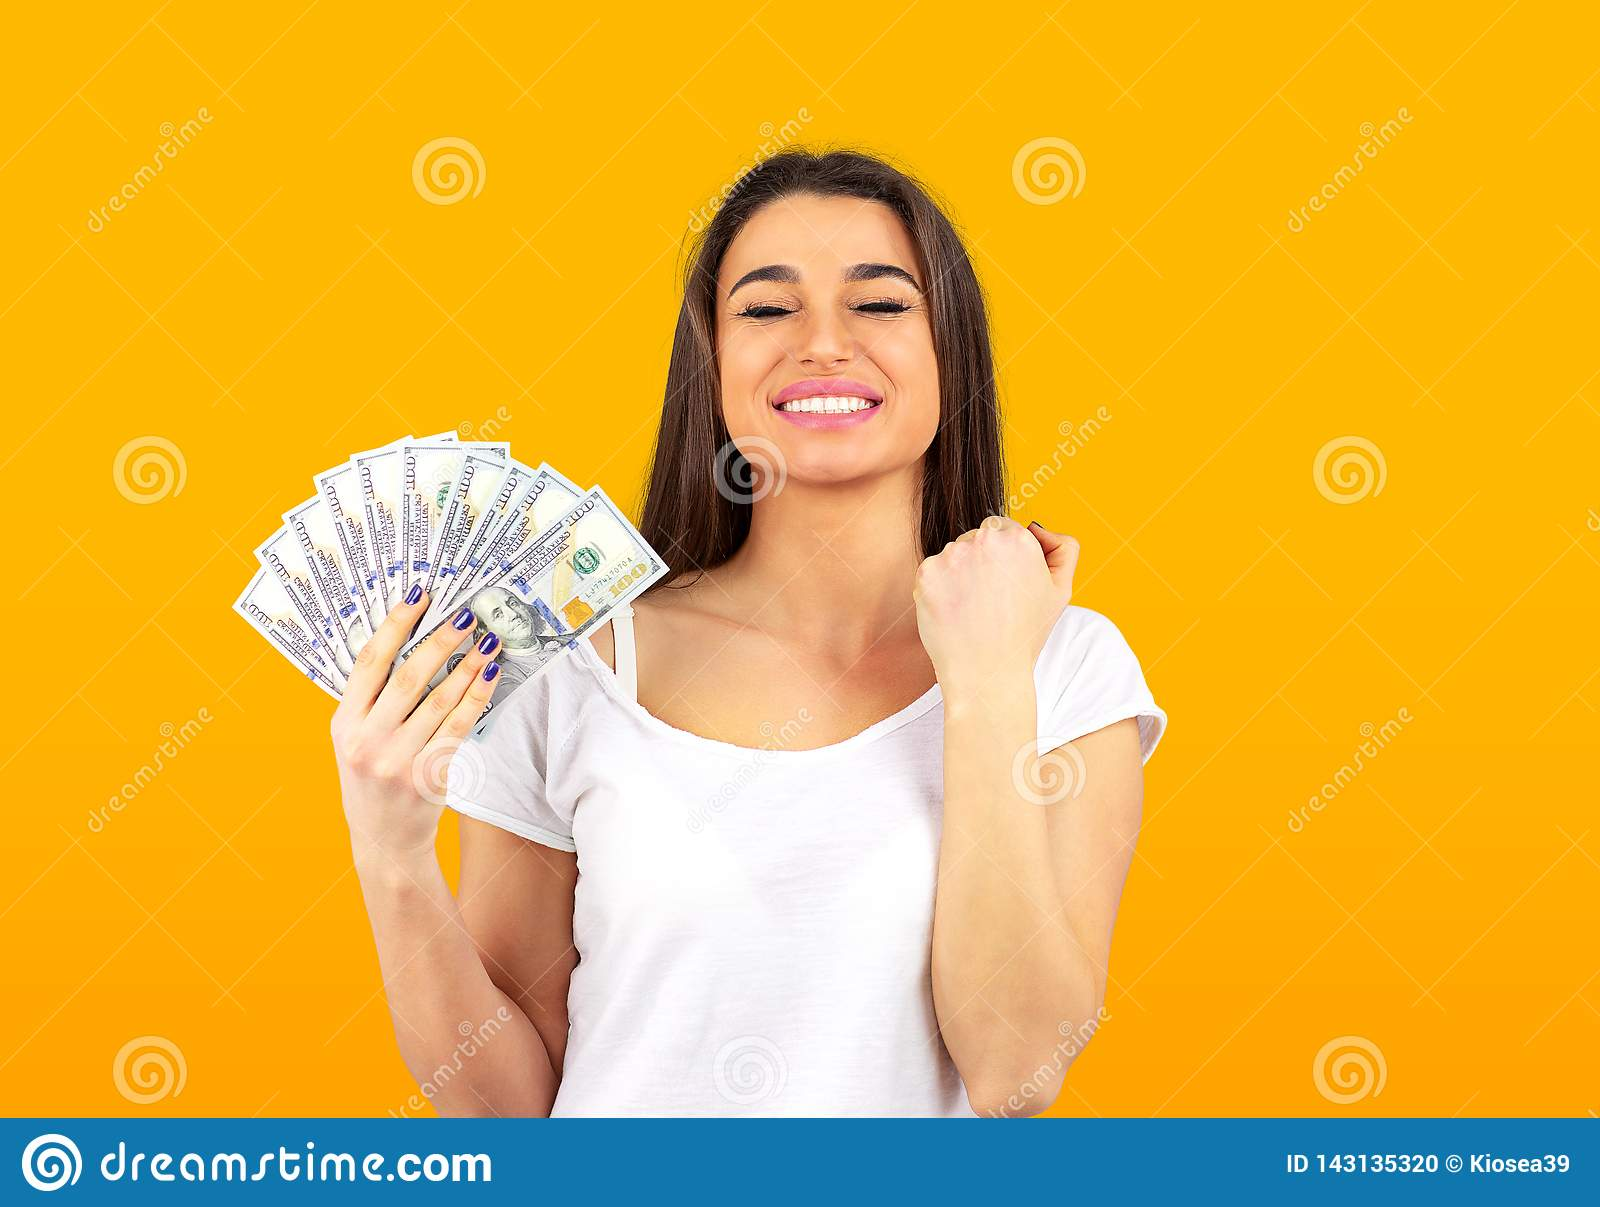 Cheerful woman holding money and celebrating success